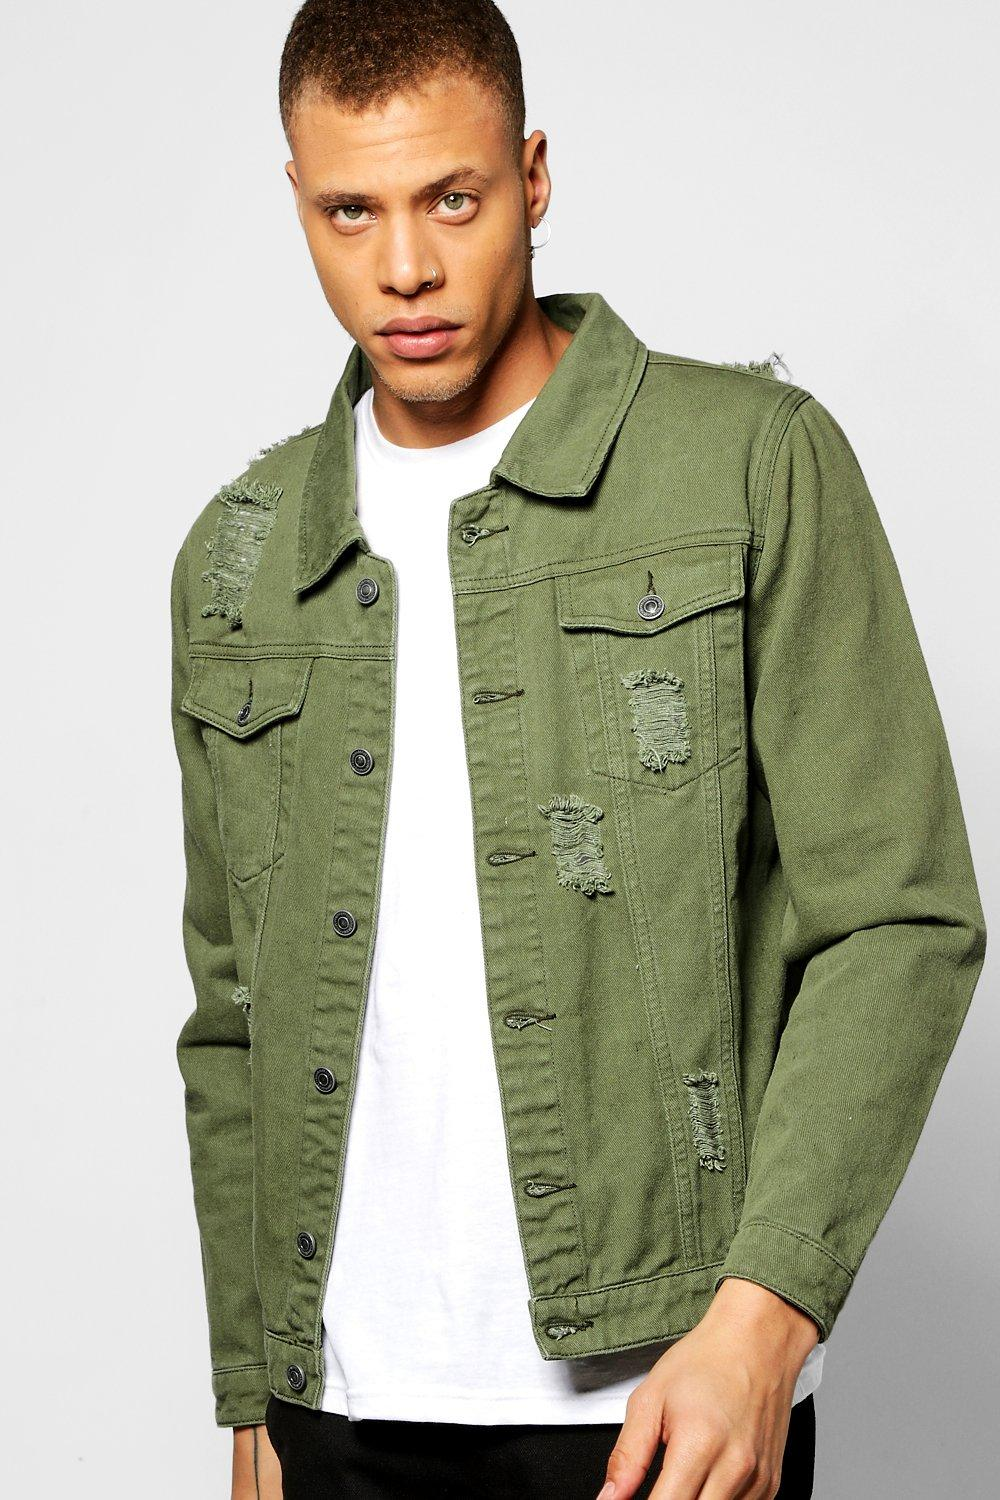 Khaki Jacket Get ready to look amazing in a khaki jacket. Khaki is the perfect combination of both casual and semi formal wear and makes for the perfect material for a jacket.